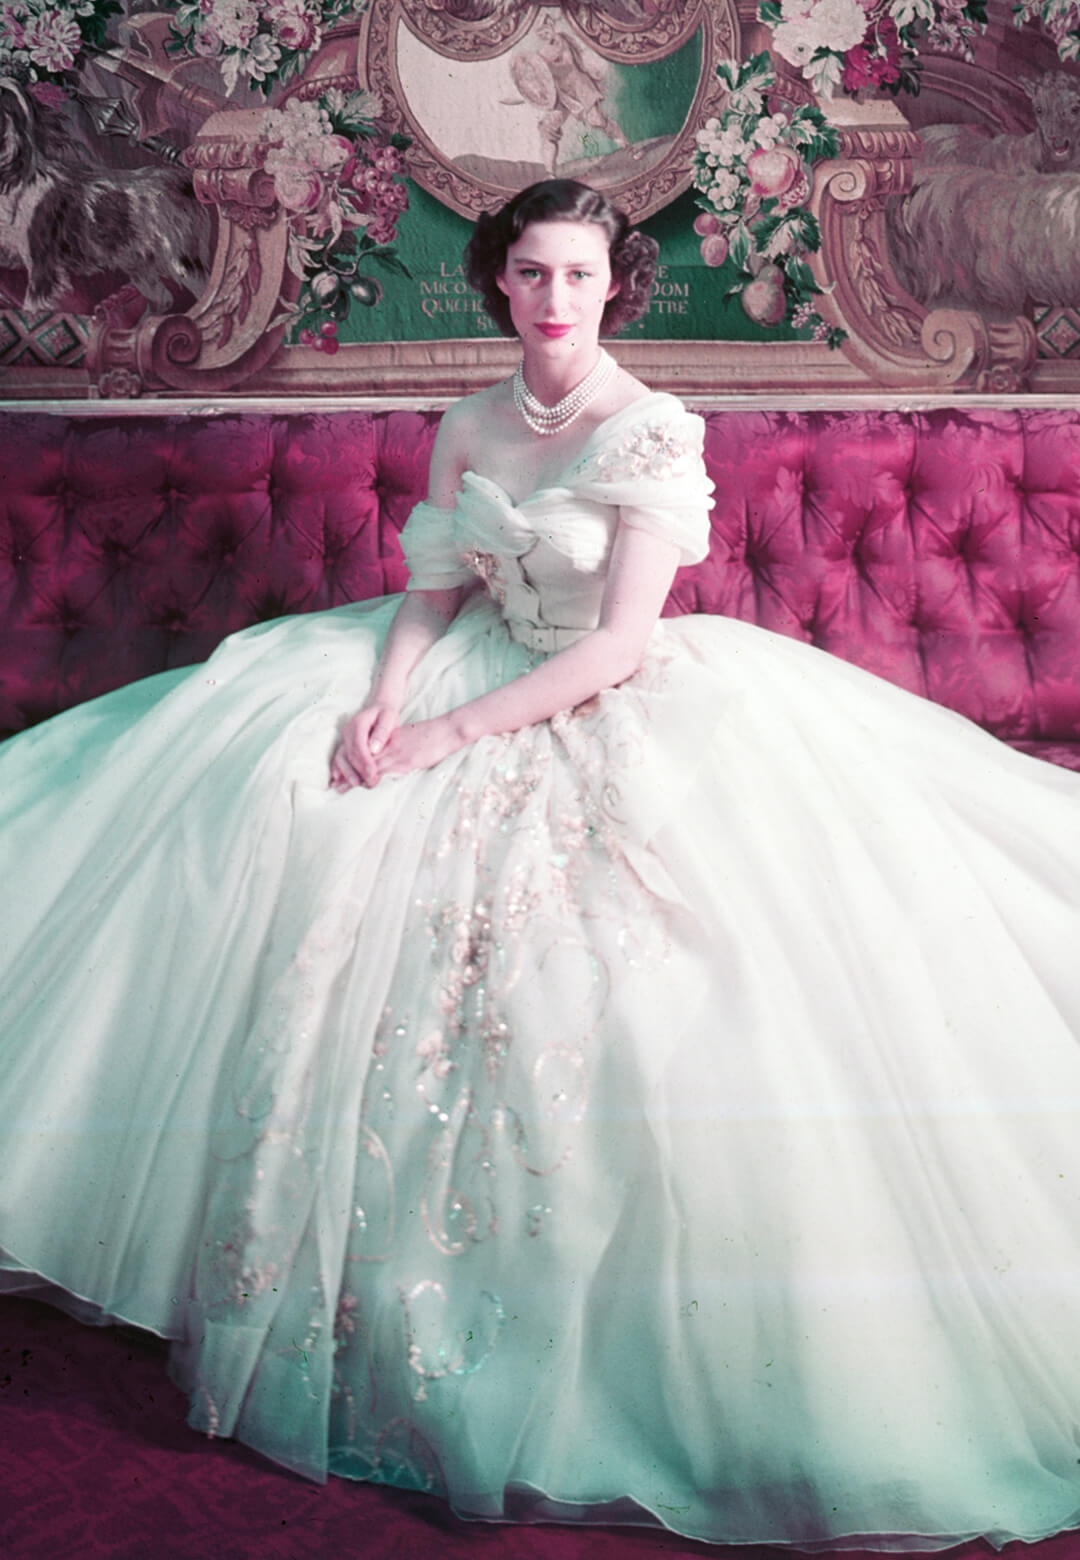 Princess Margaret (1930-2002) photographed by Cecil Beaton in a dress designed by Christian Dior for her 21st birthday celebrations